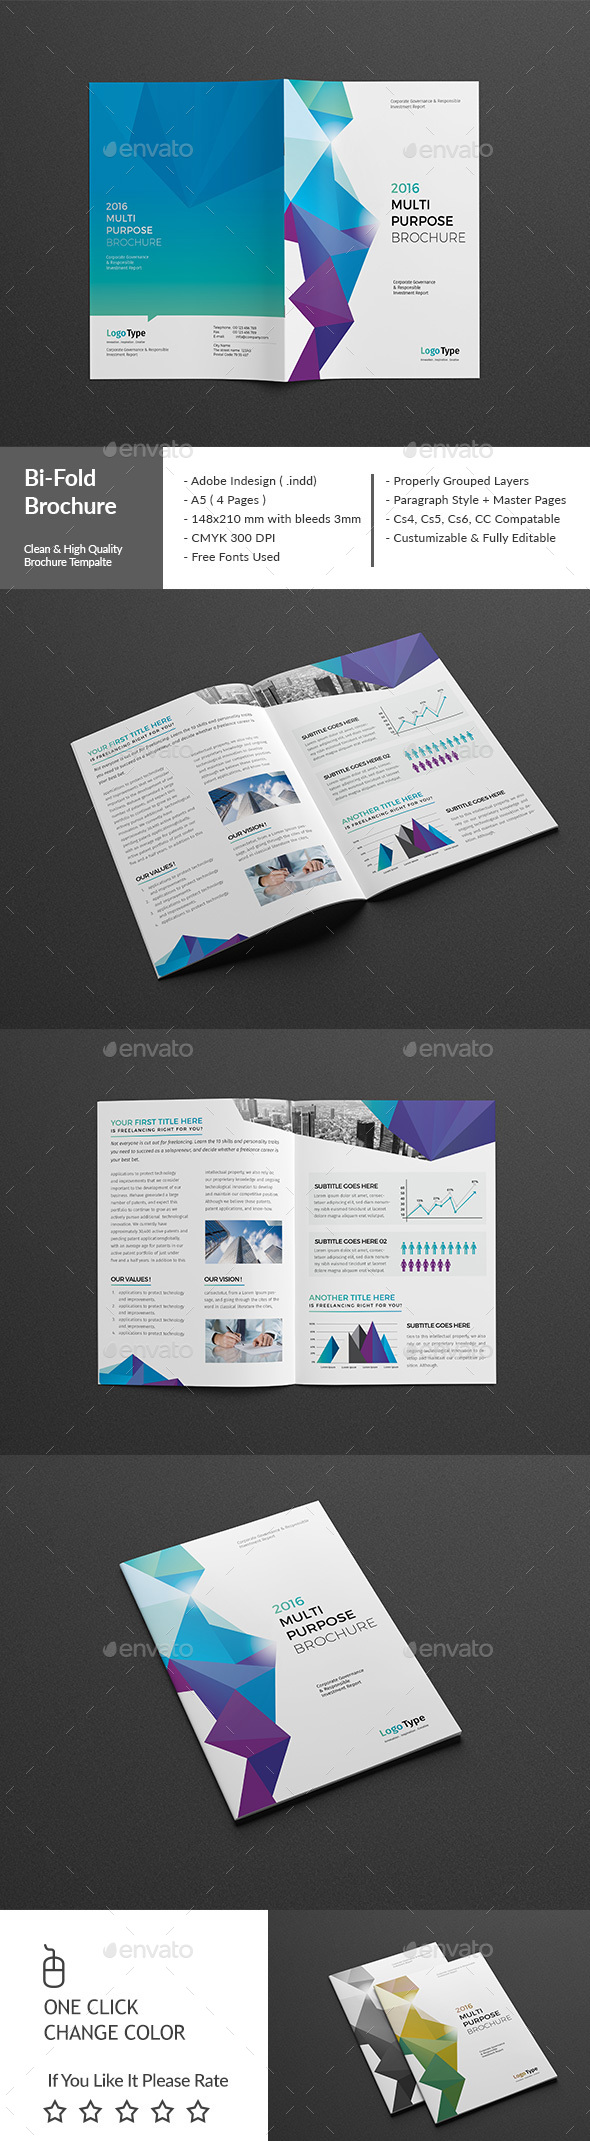 Abstract BiFold Brochure Template InDesign INDD Design Download - Bi fold brochure template indesign